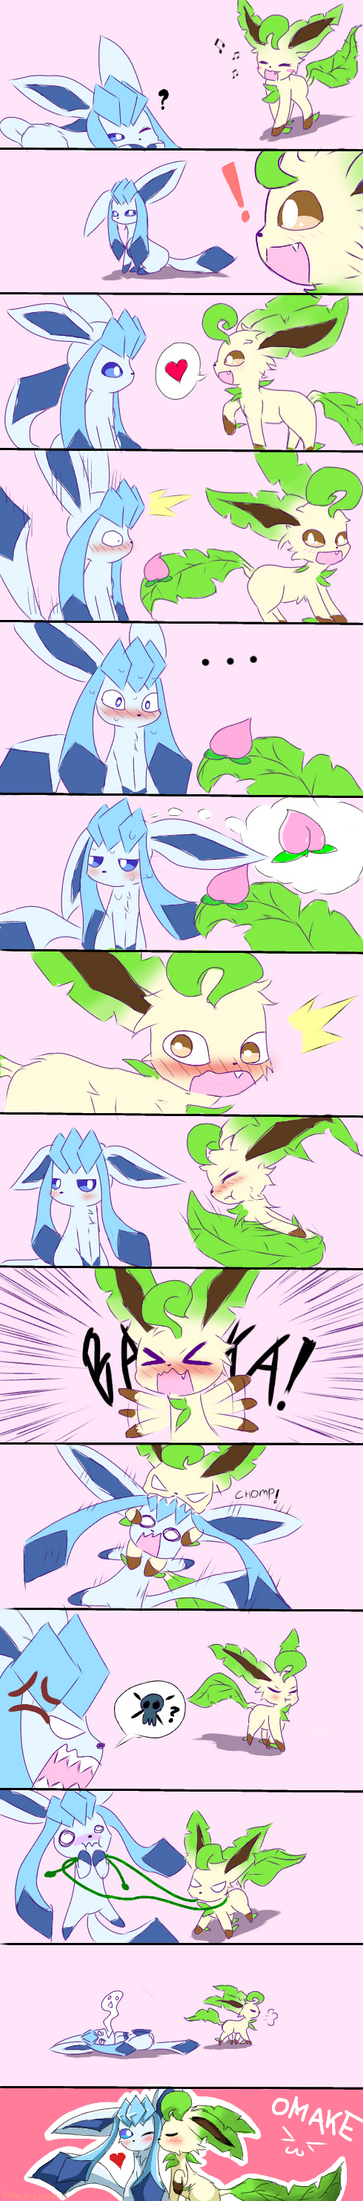 Glaceon x Leafeon by Haxus-kun